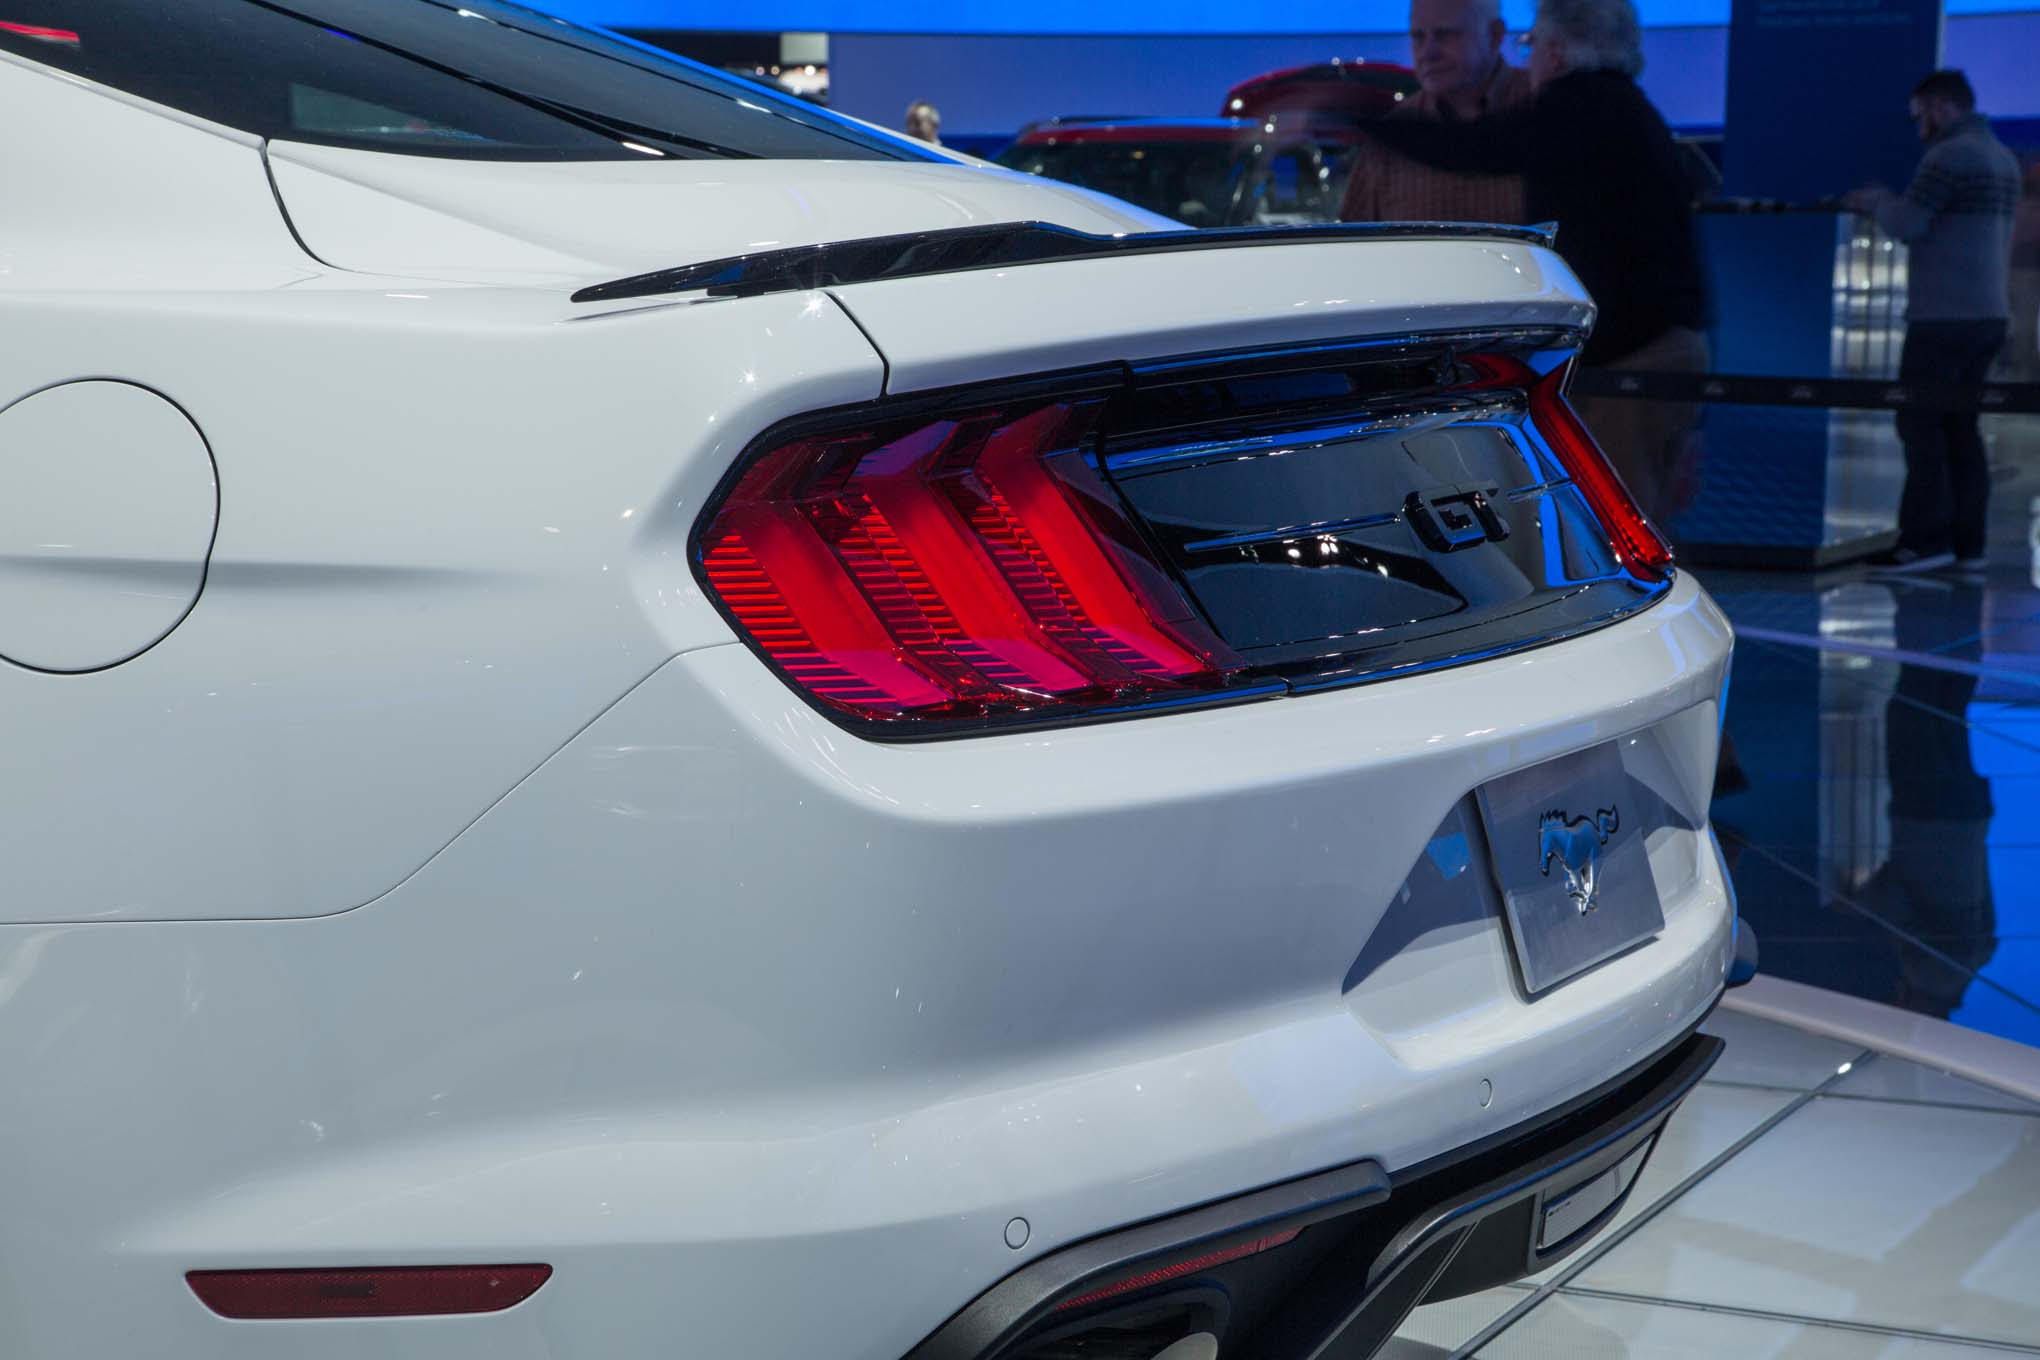 2018-Ford-Mustang-GT-rear-taillight